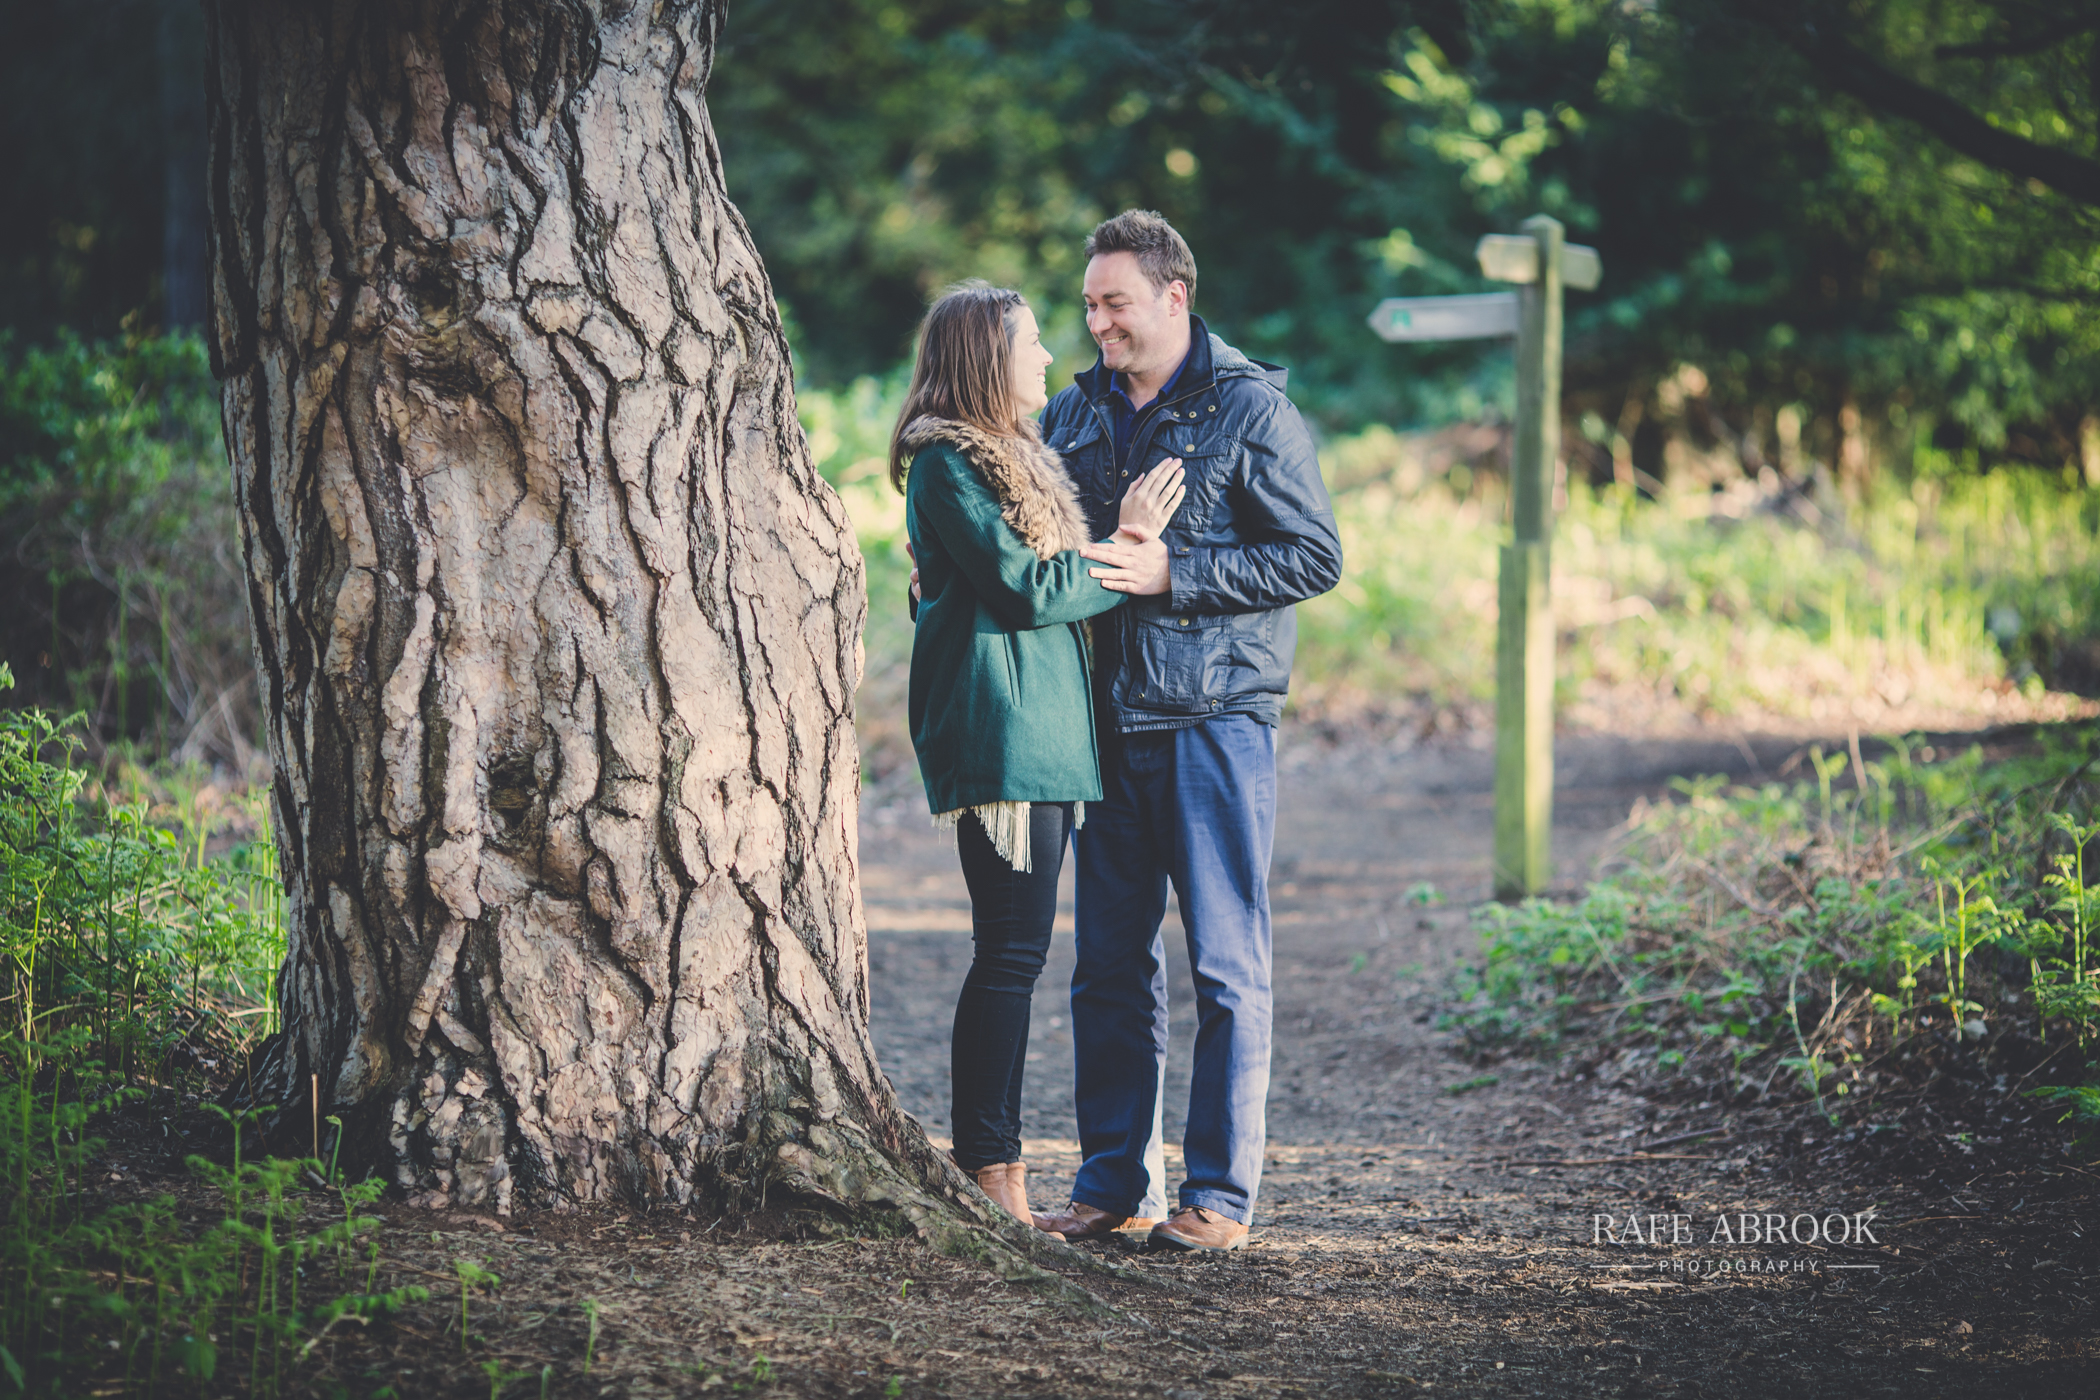 jon & laura engagement shoot rspb the lodge sandy bedfordshire-1012.jpg